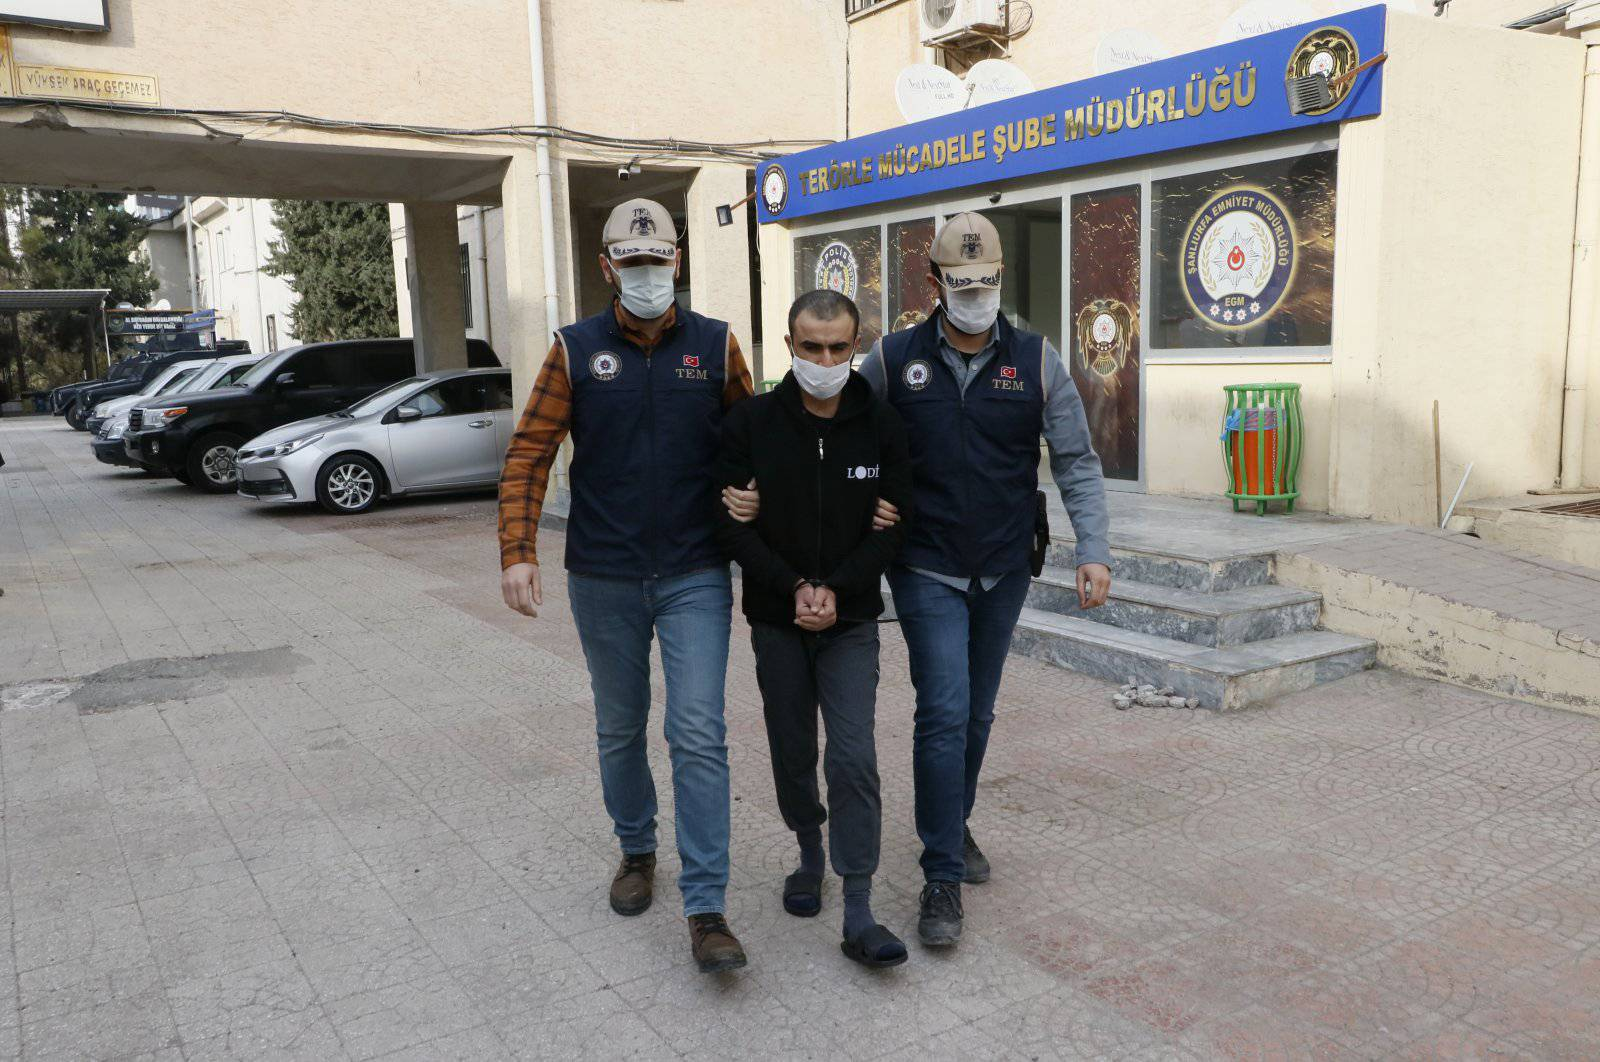 GFATF - LLL - Turkish security forces detained Islamic State member accomplice in Sultanahmet and Suruc terror attacks